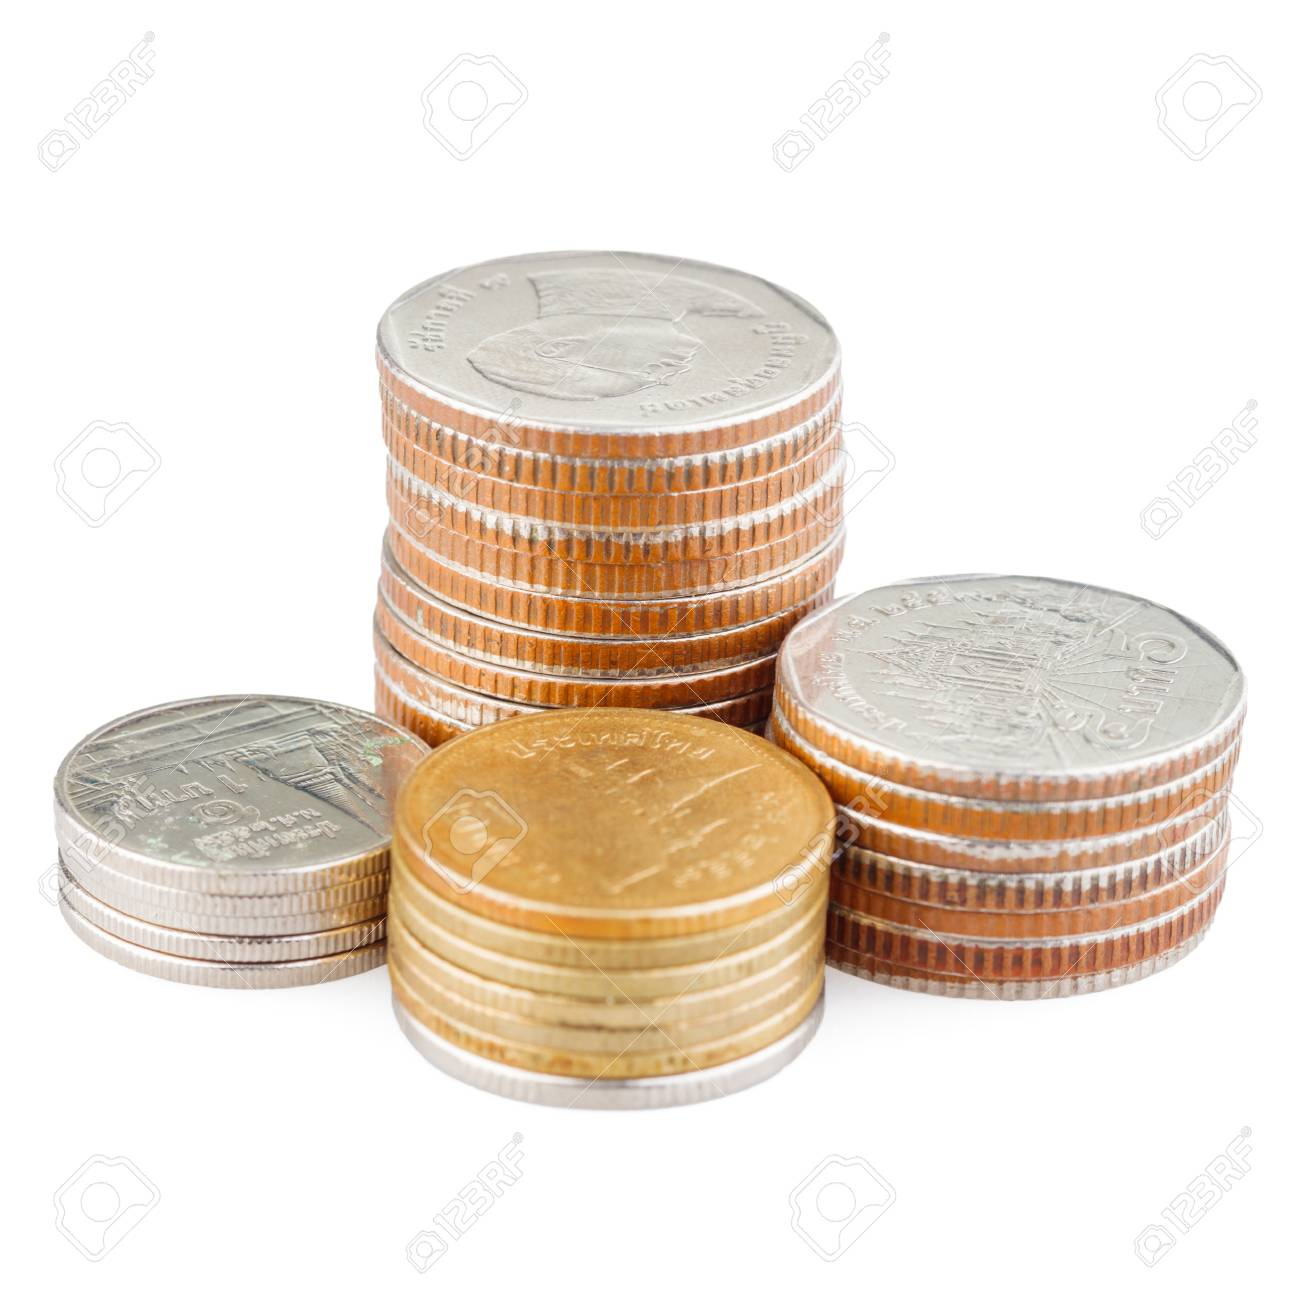 coin stack isolated on white with clipping path - 104939809